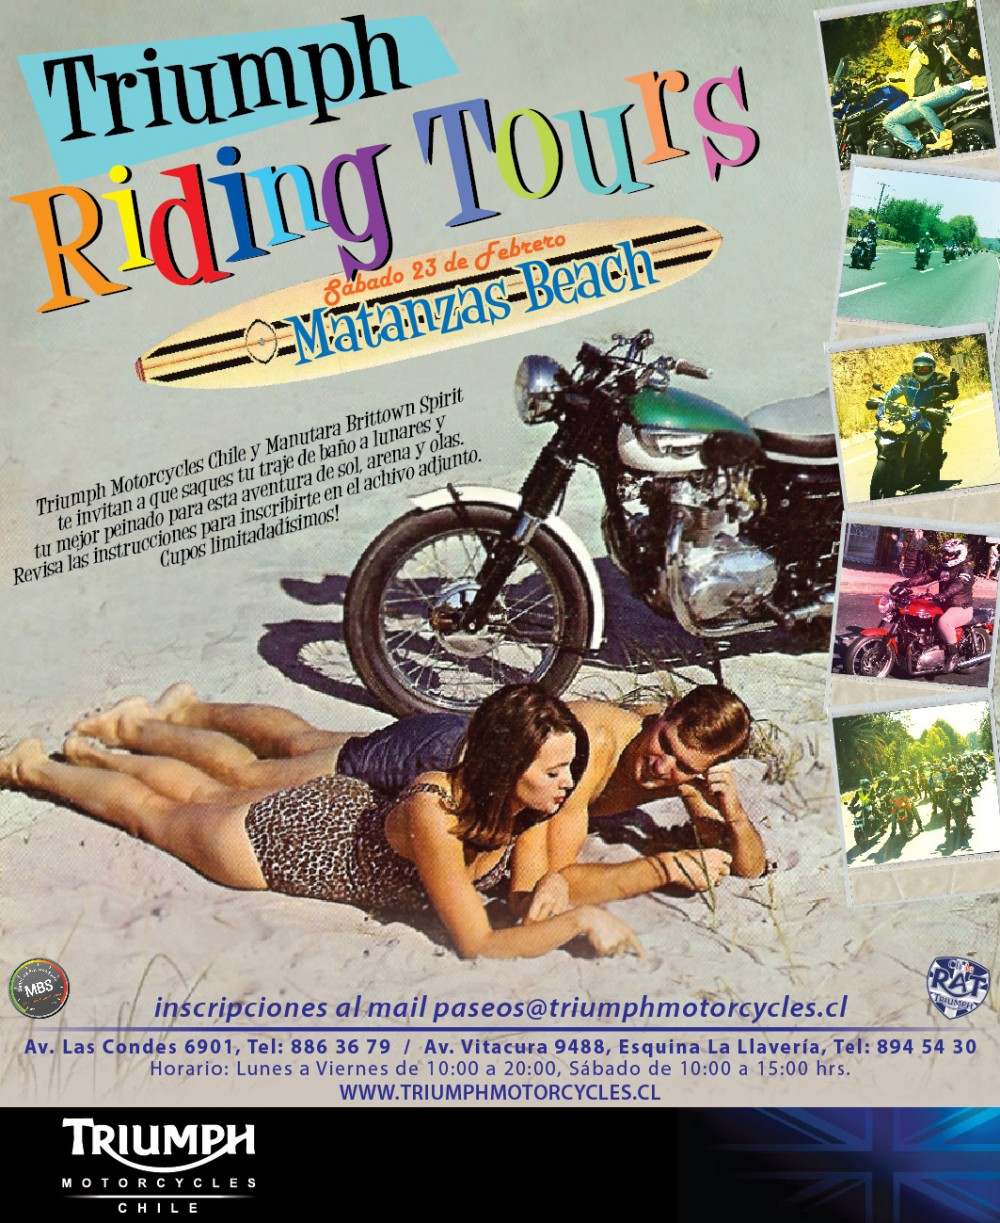 2do Paseo Triumph Riding Tours - Matanzas